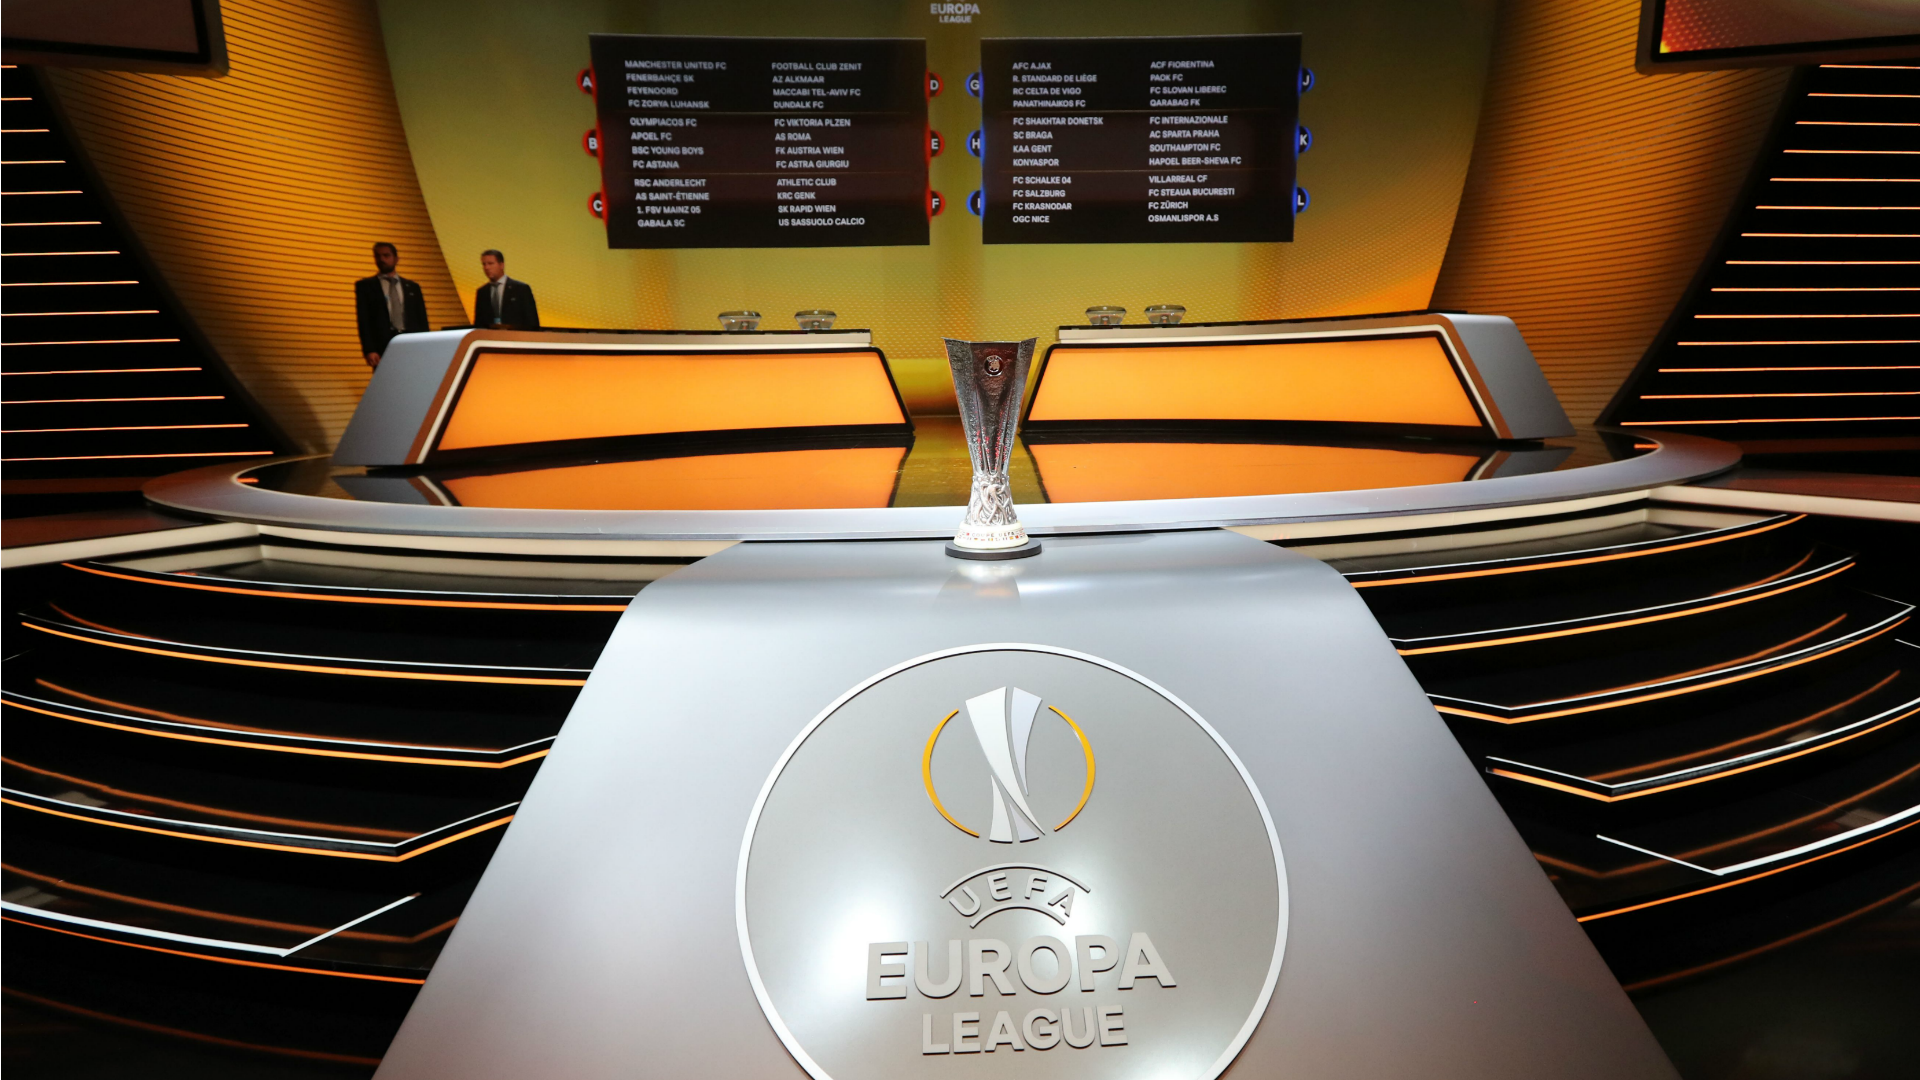 Europa League 2016 draw